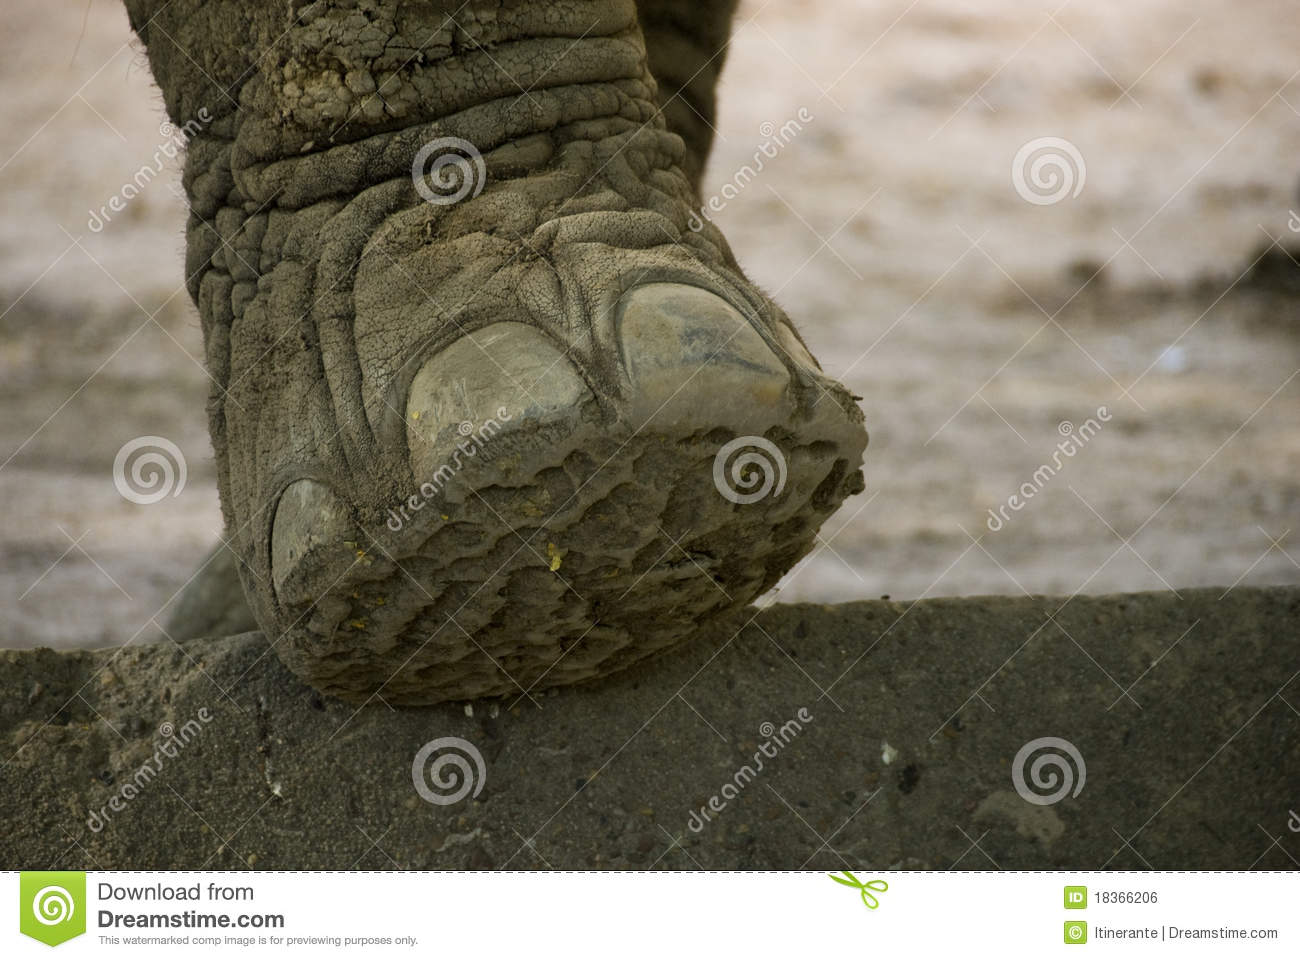 Elephant foot stock photo. Image of outside, shadow, mammal - 18366206